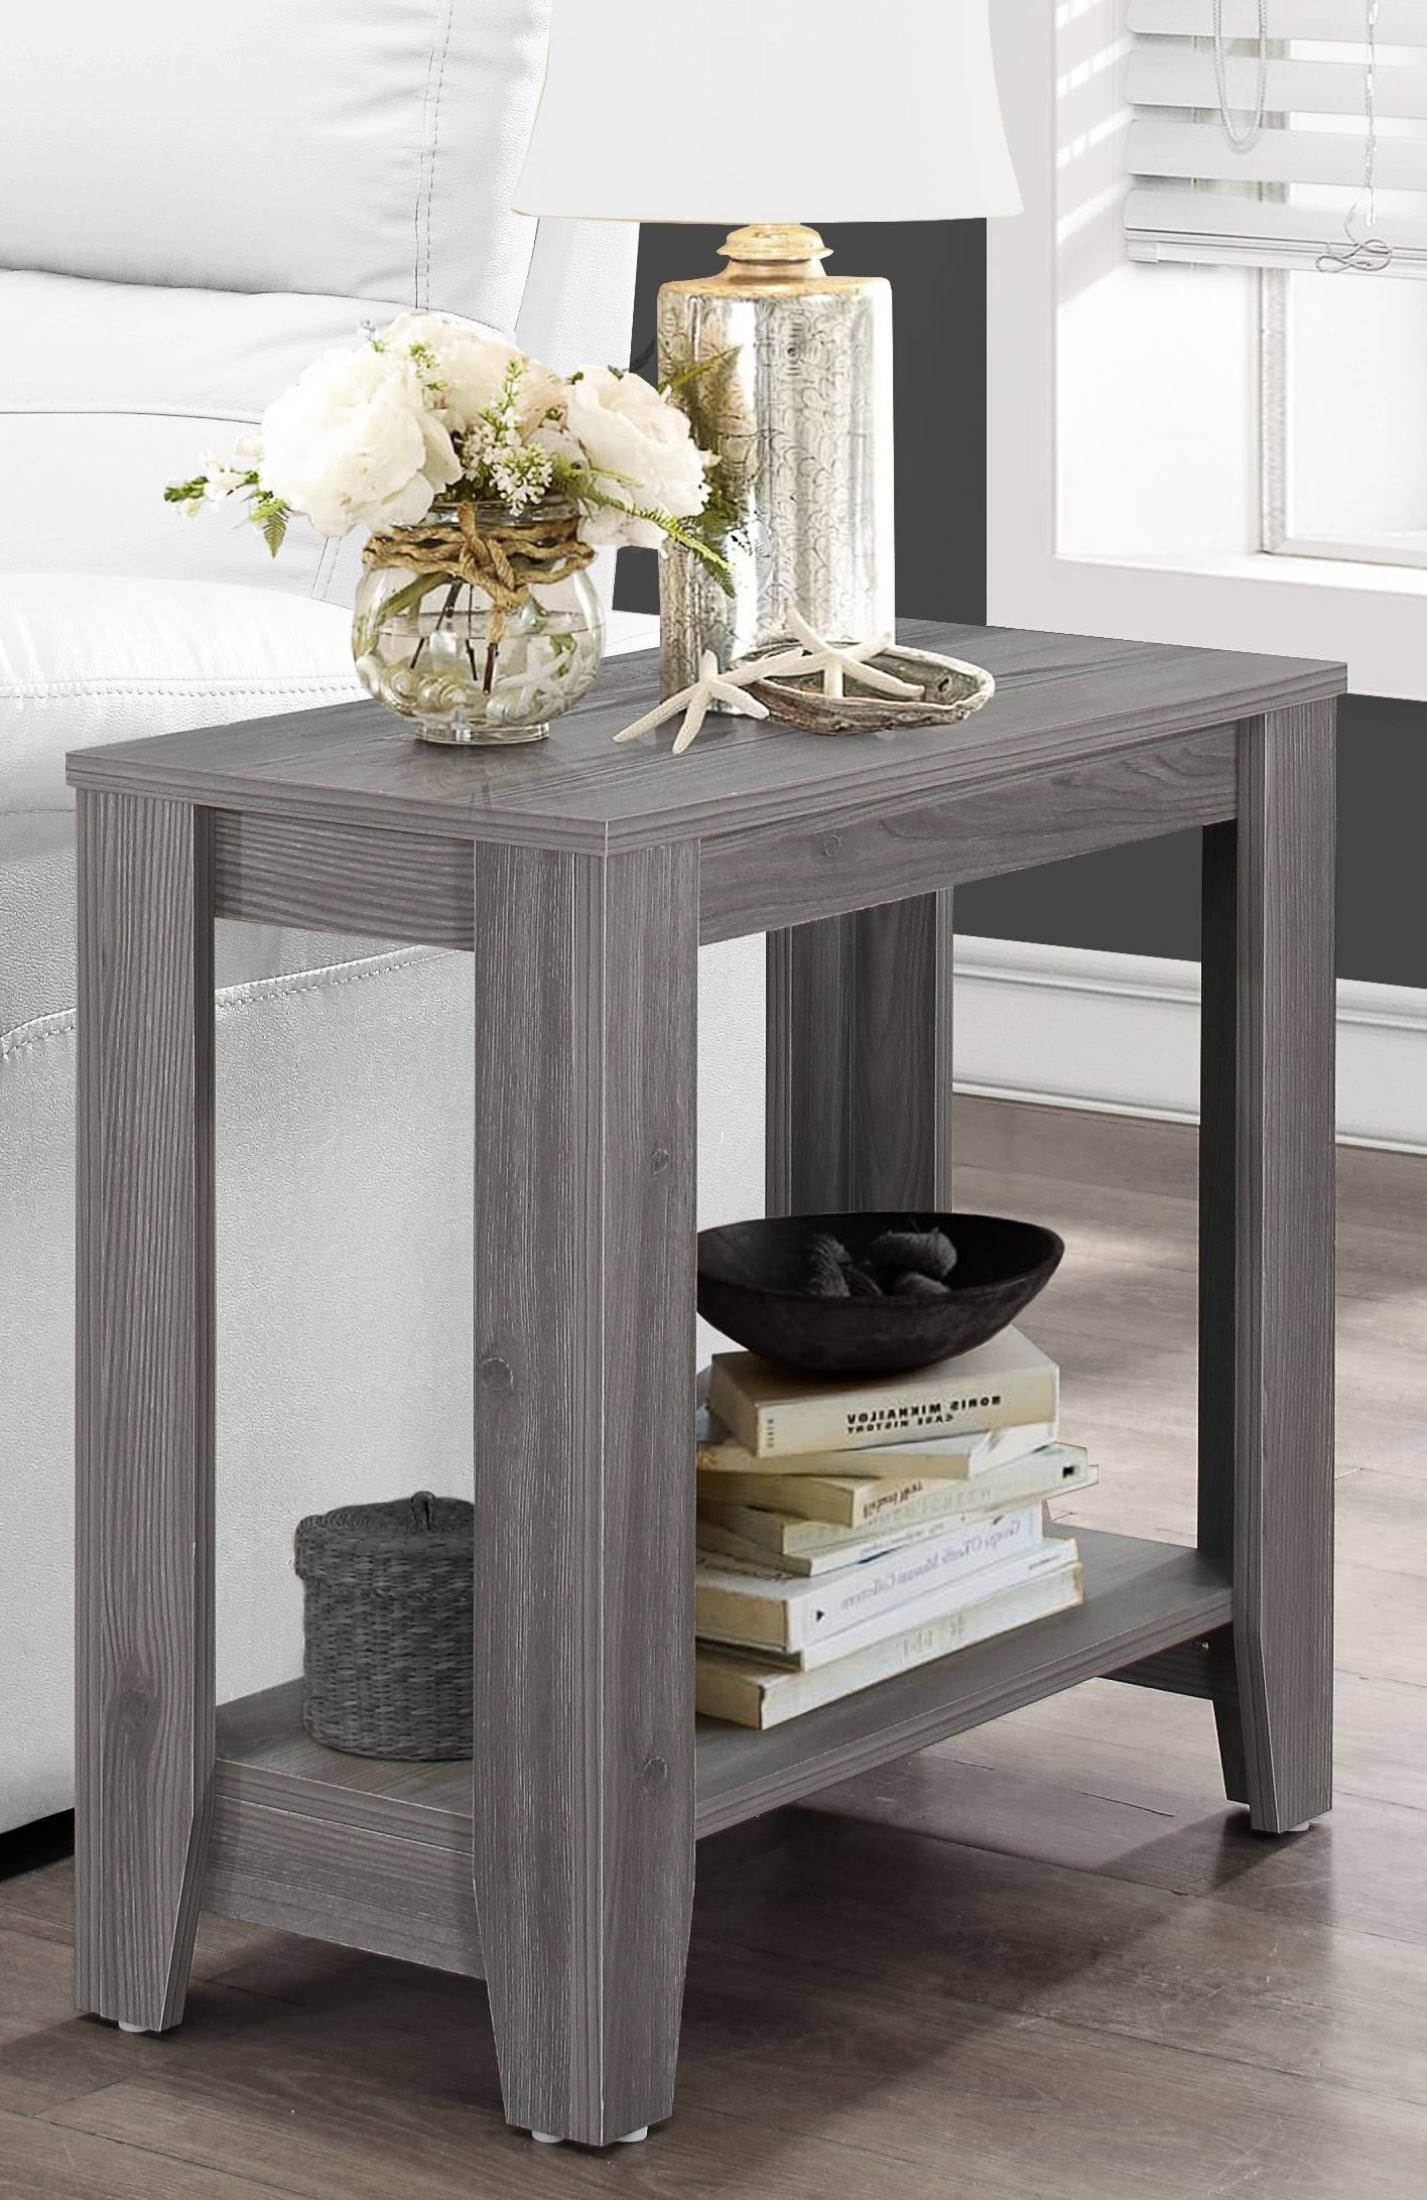 gray accent table from monarch coleman furniture safavieh janika distressed west elm shelves farmhouse chairs dinner placemats small patio clearance circular cotton tablecloths